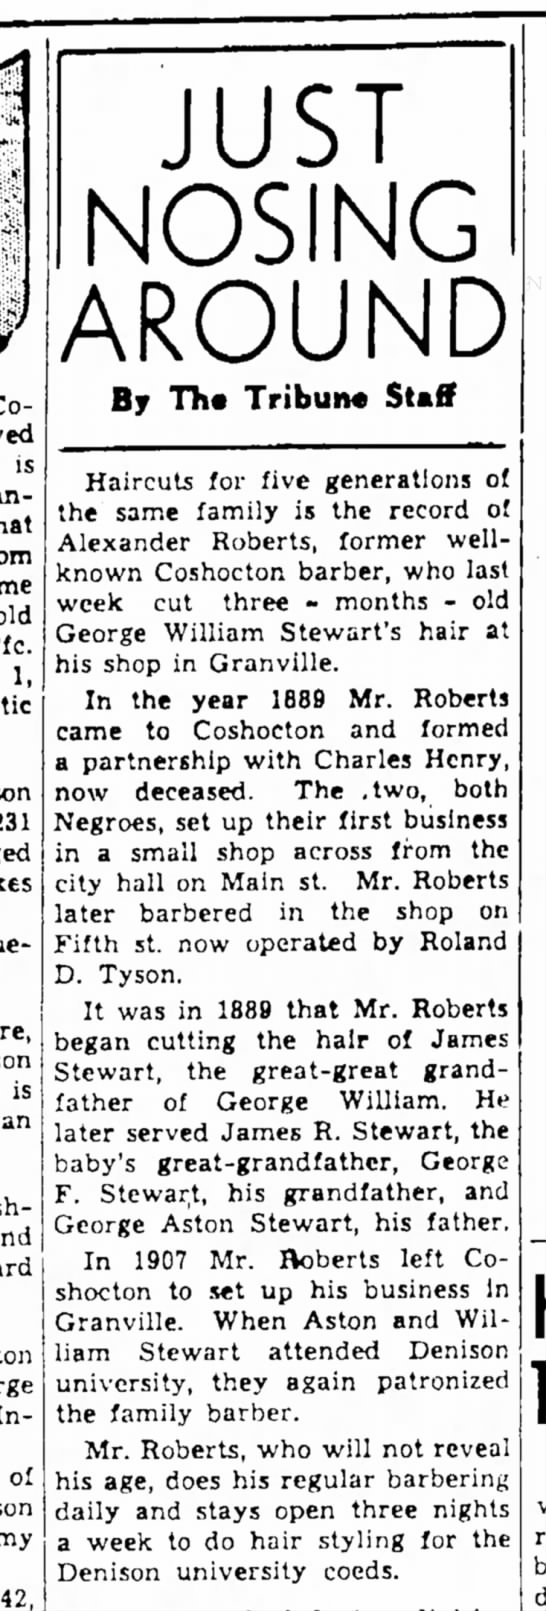 Barber record - The Coshocton Tribune, Tuesday, 9 Oct 1945, p. 8 - is Mindanao that from same Pfc. 1, son 4. Hue-...